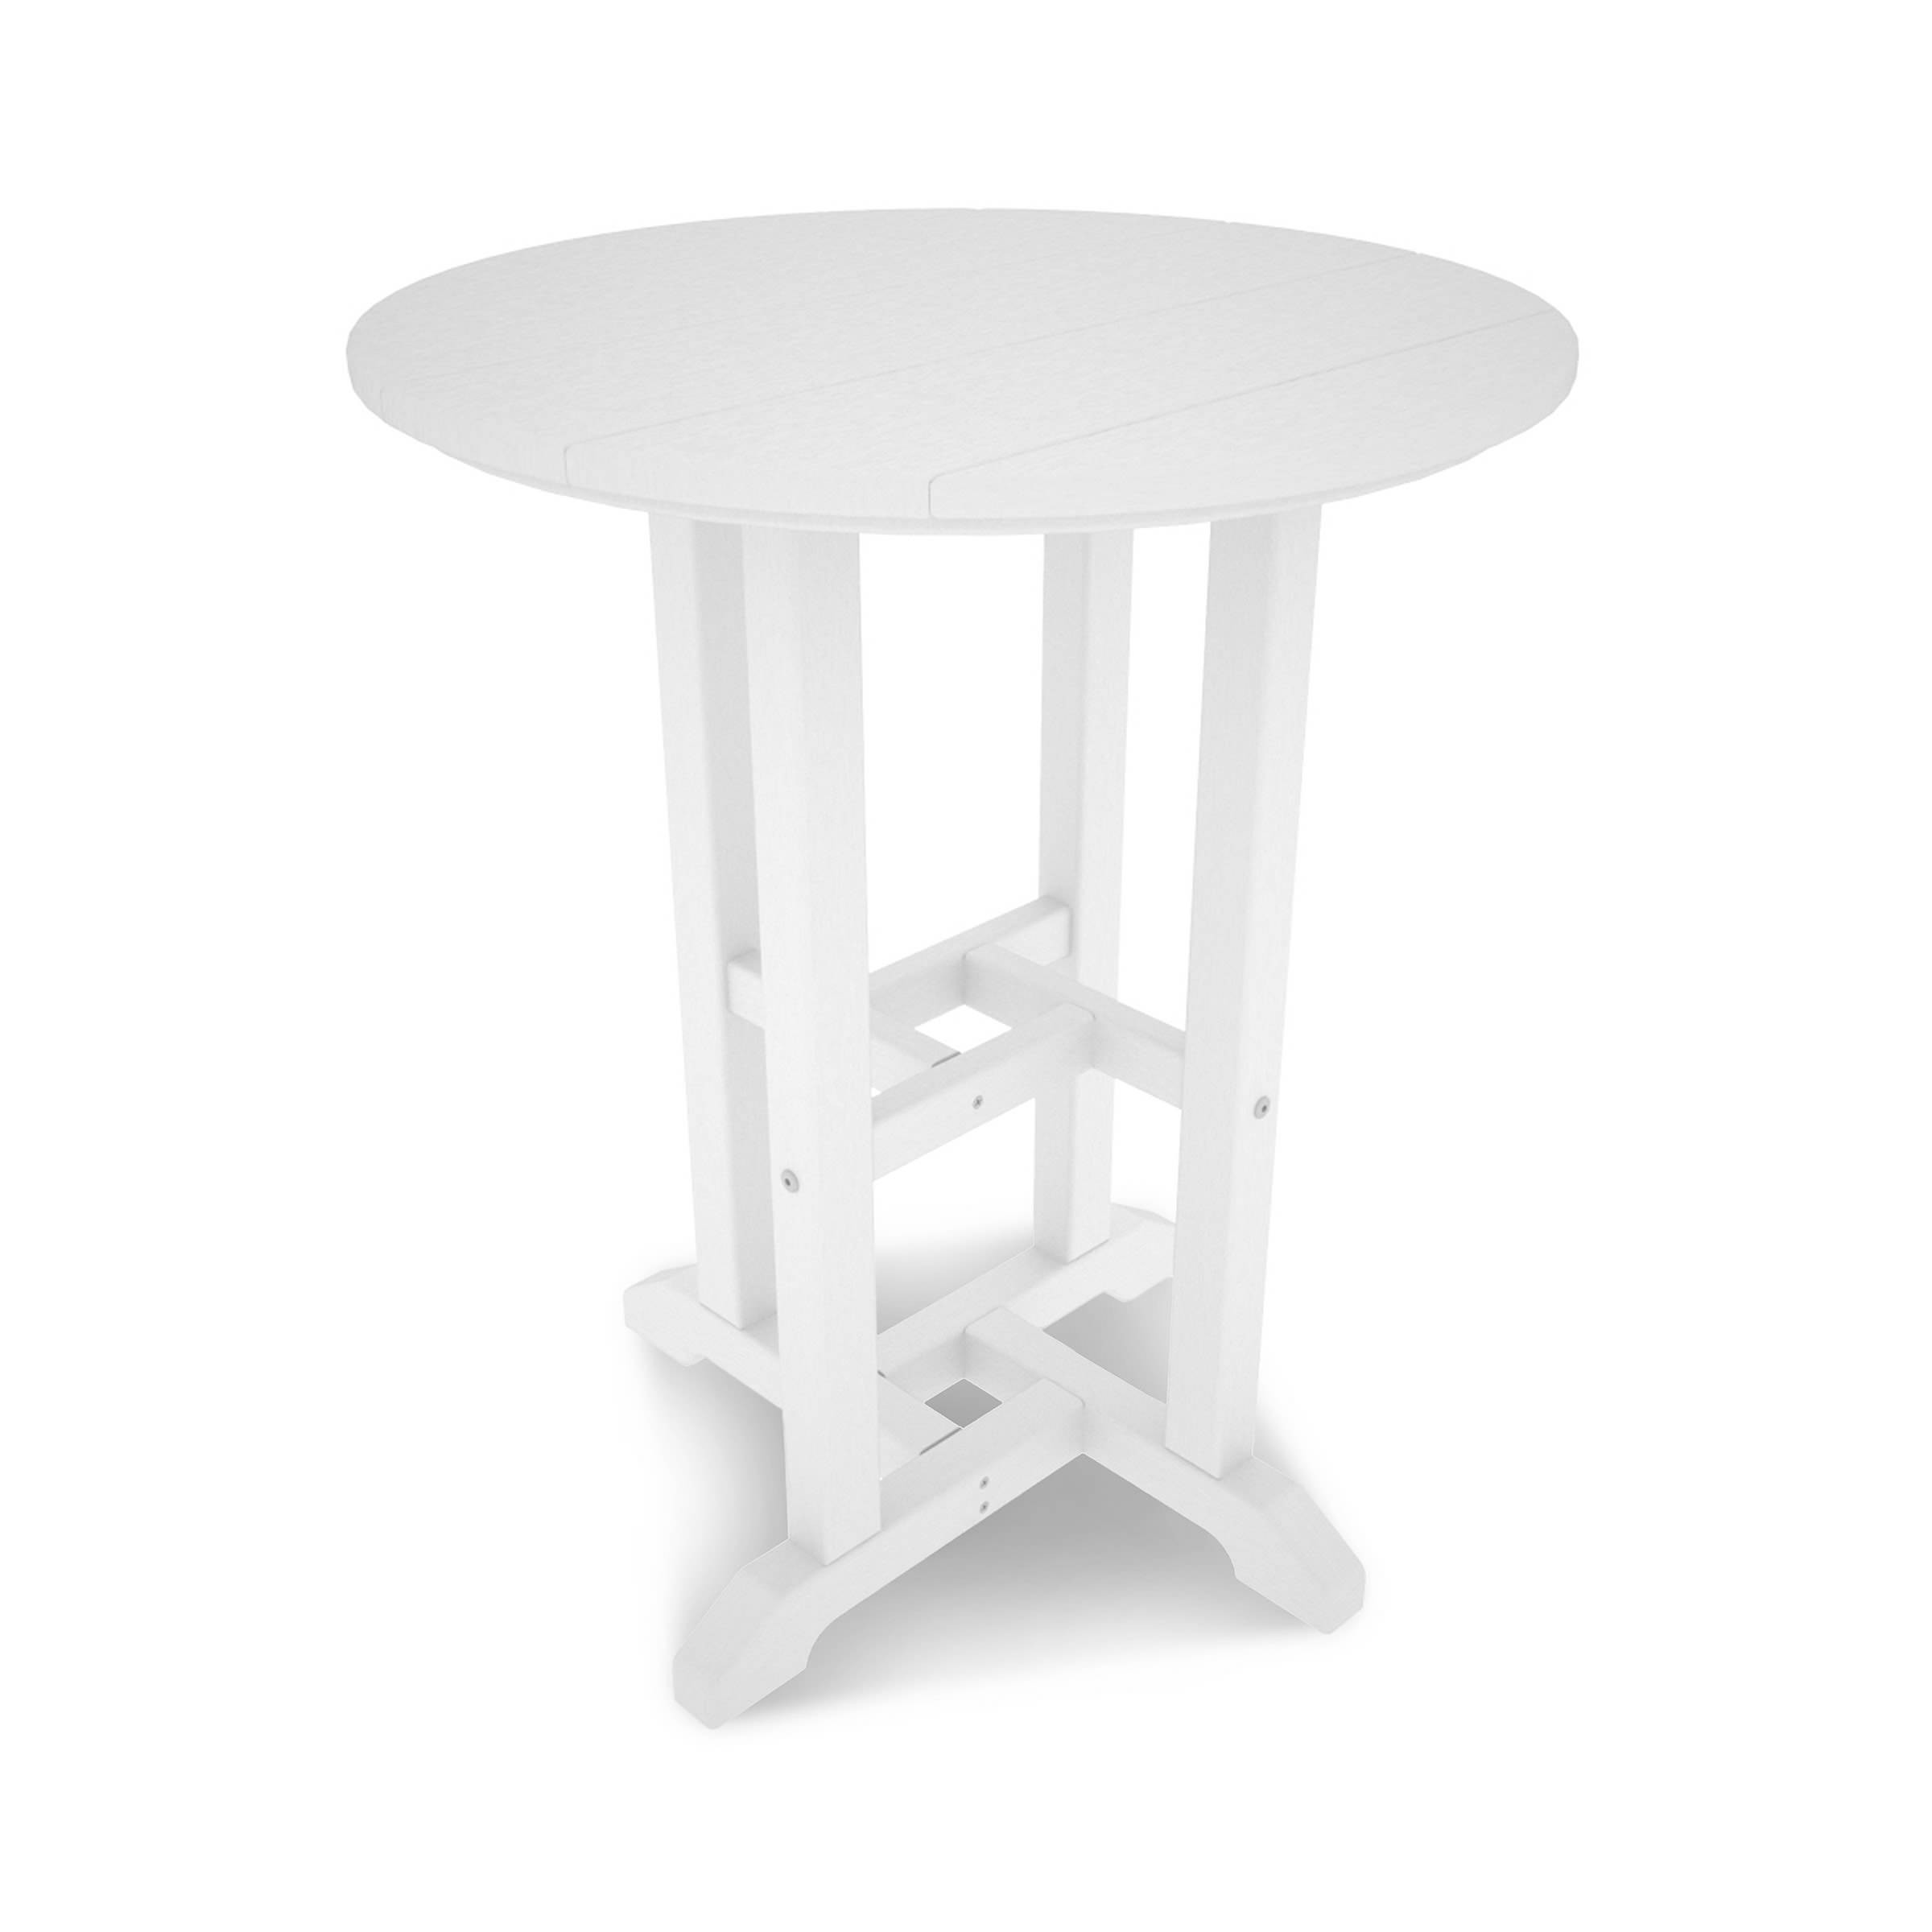 POLYWOOD Traditional 24in Round Dining Table